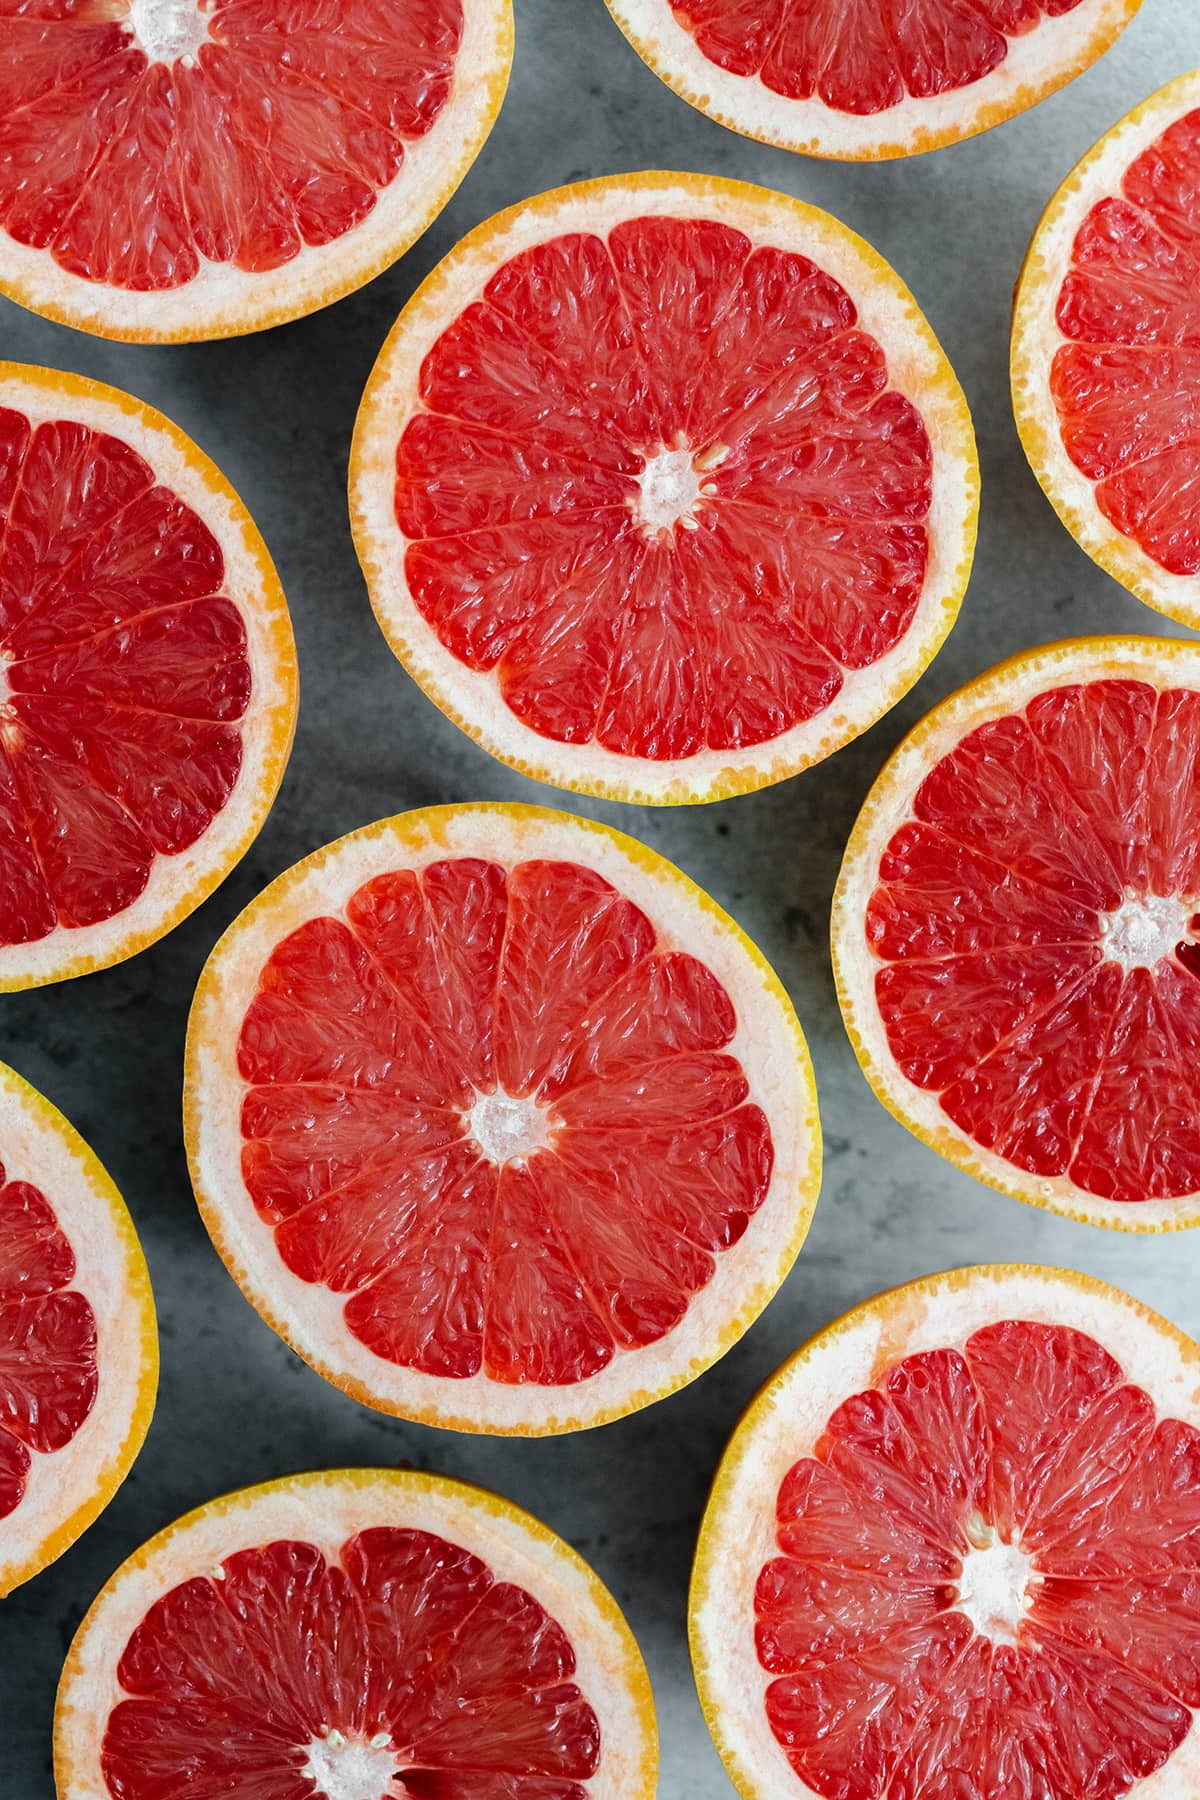 Grapefruits cut in half, laid out evenly cut side up on a gray background.